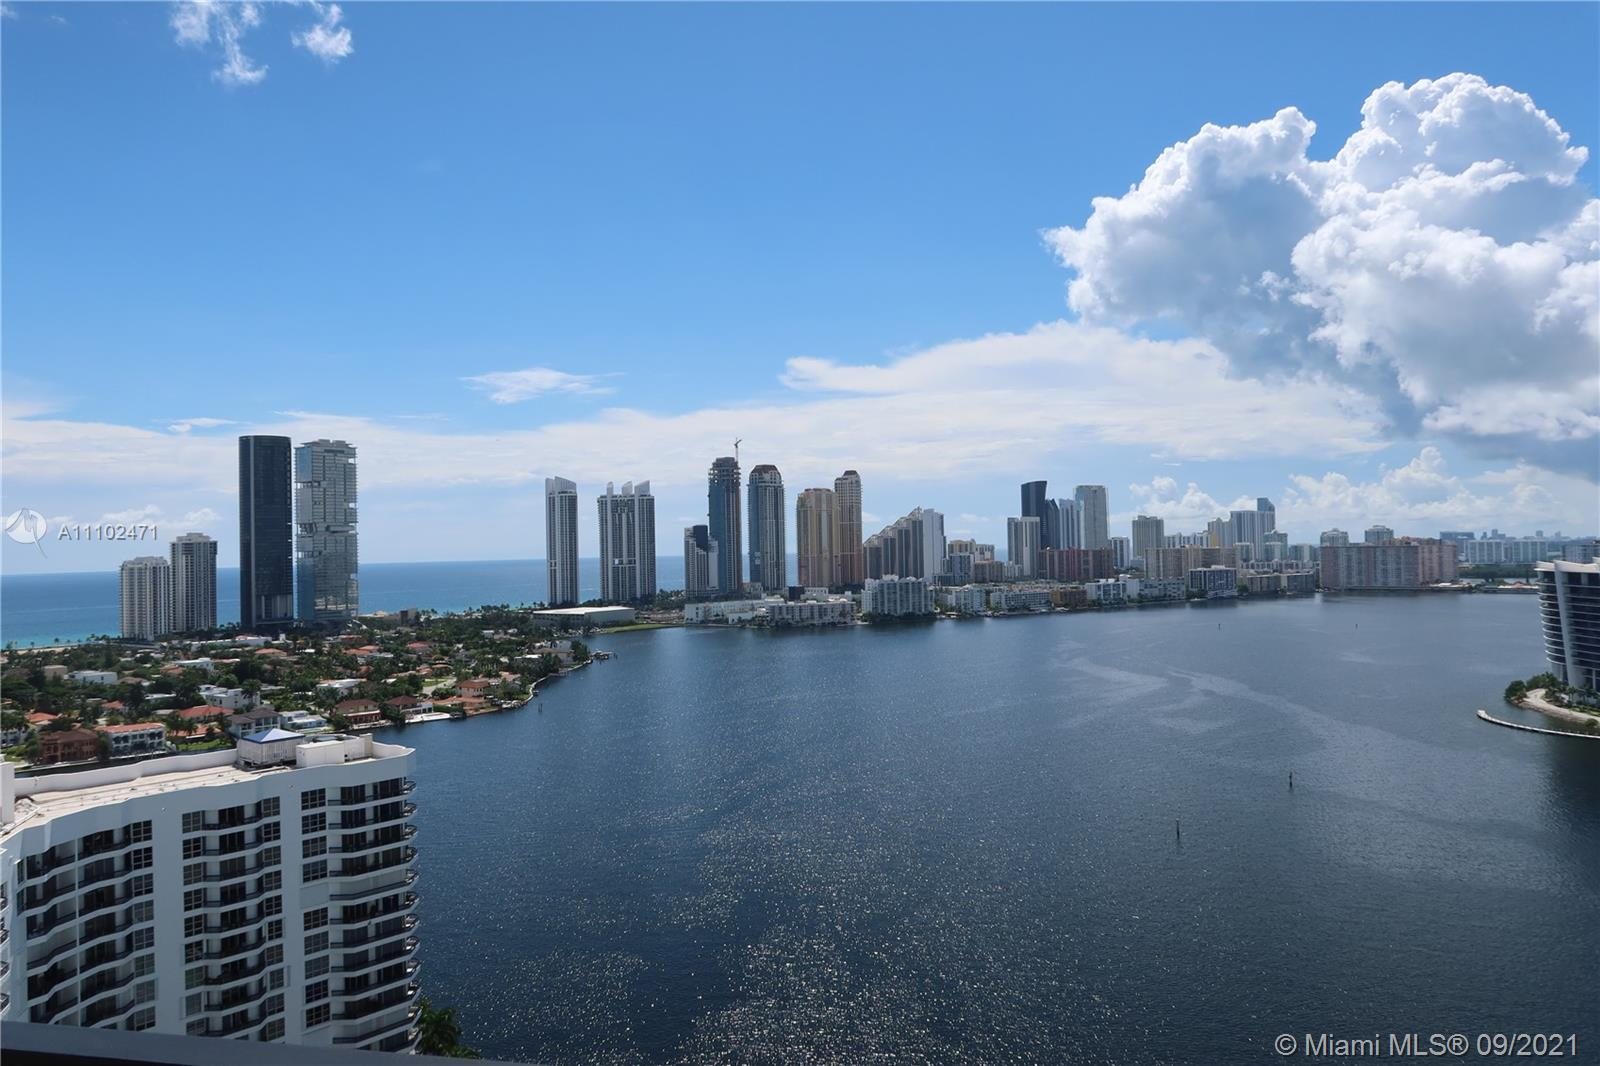 MYSTIC POINTE TOWER 500 C Condo,For Rent,MYSTIC POINTE TOWER 500 C Brickell,realty,broker,condos near me